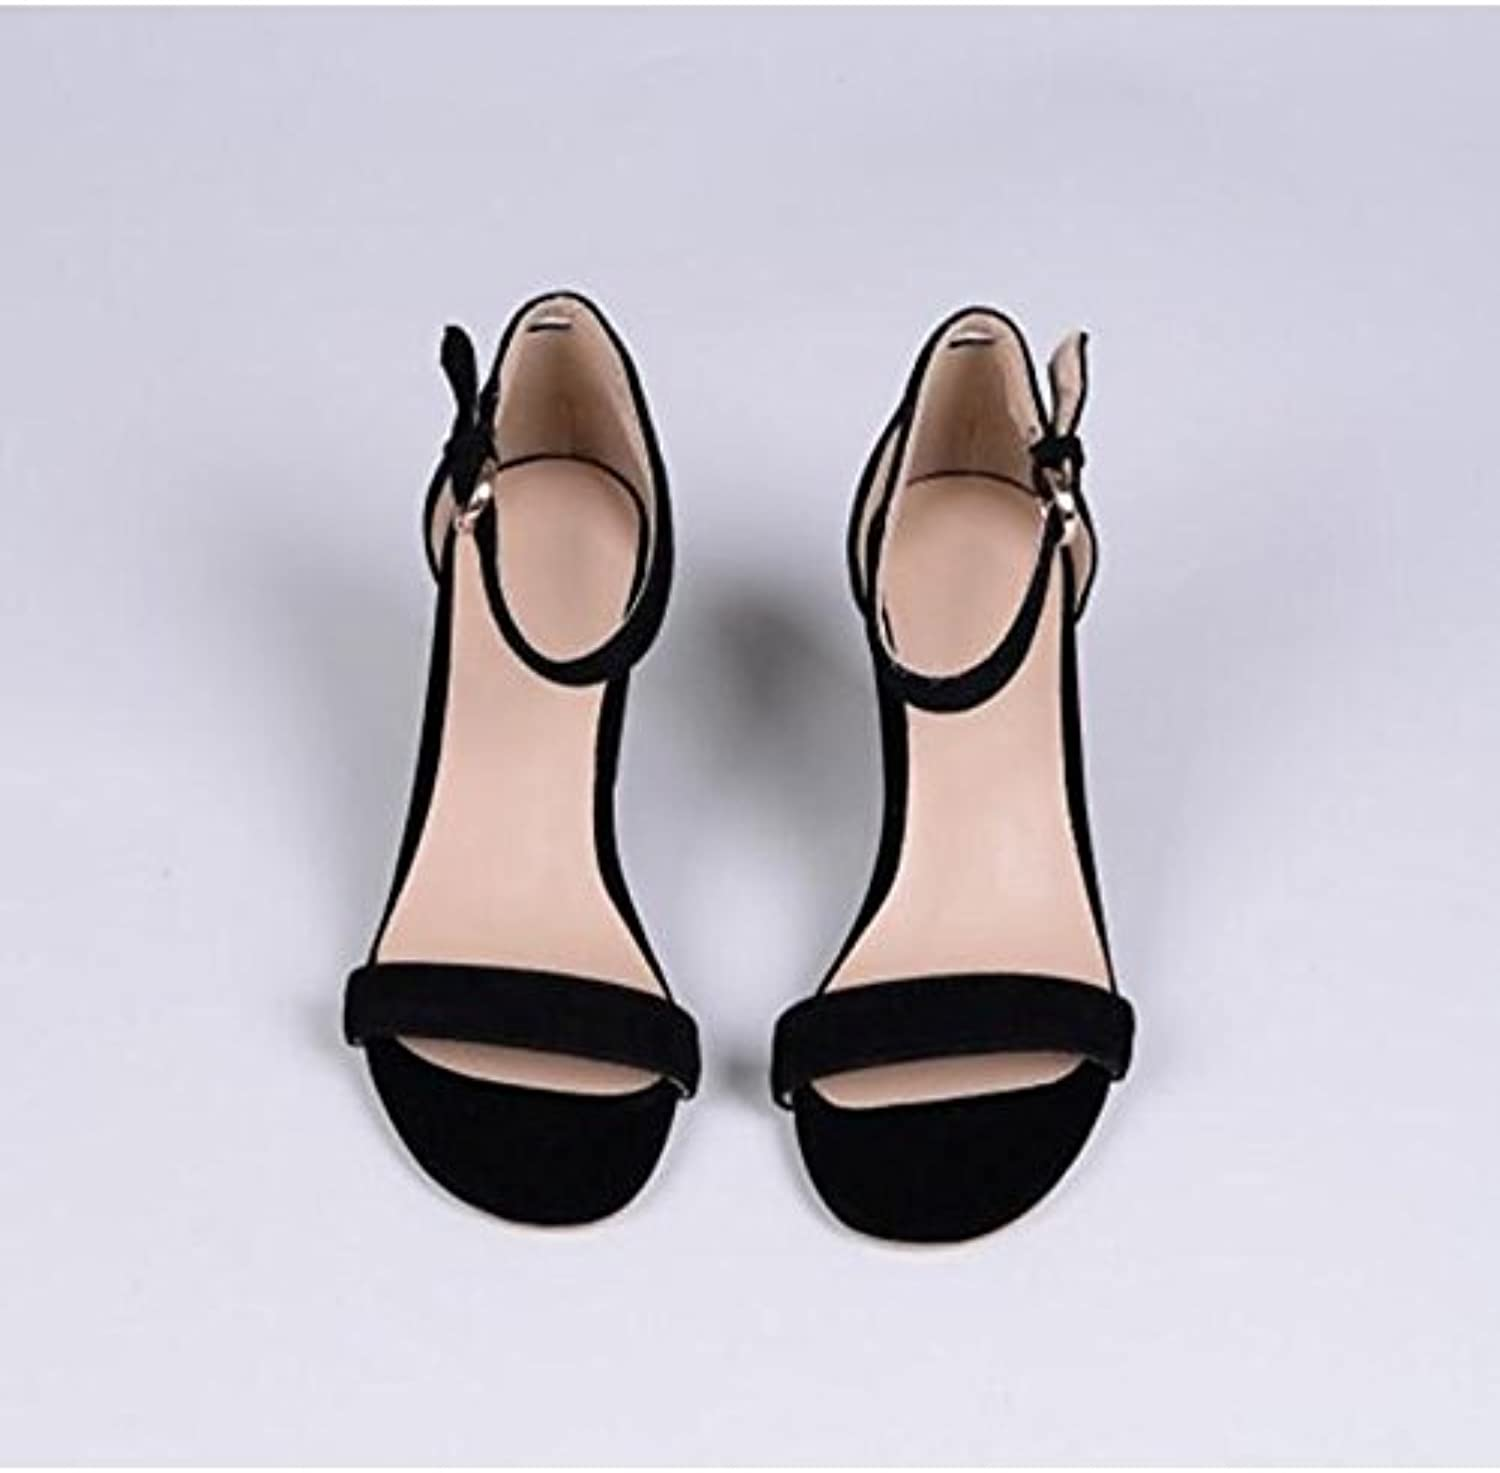 Women's shoes Cowhide Spring Summer Basic Pump Comfort Sandals Chunky Heel for Casual White Black Red Almond